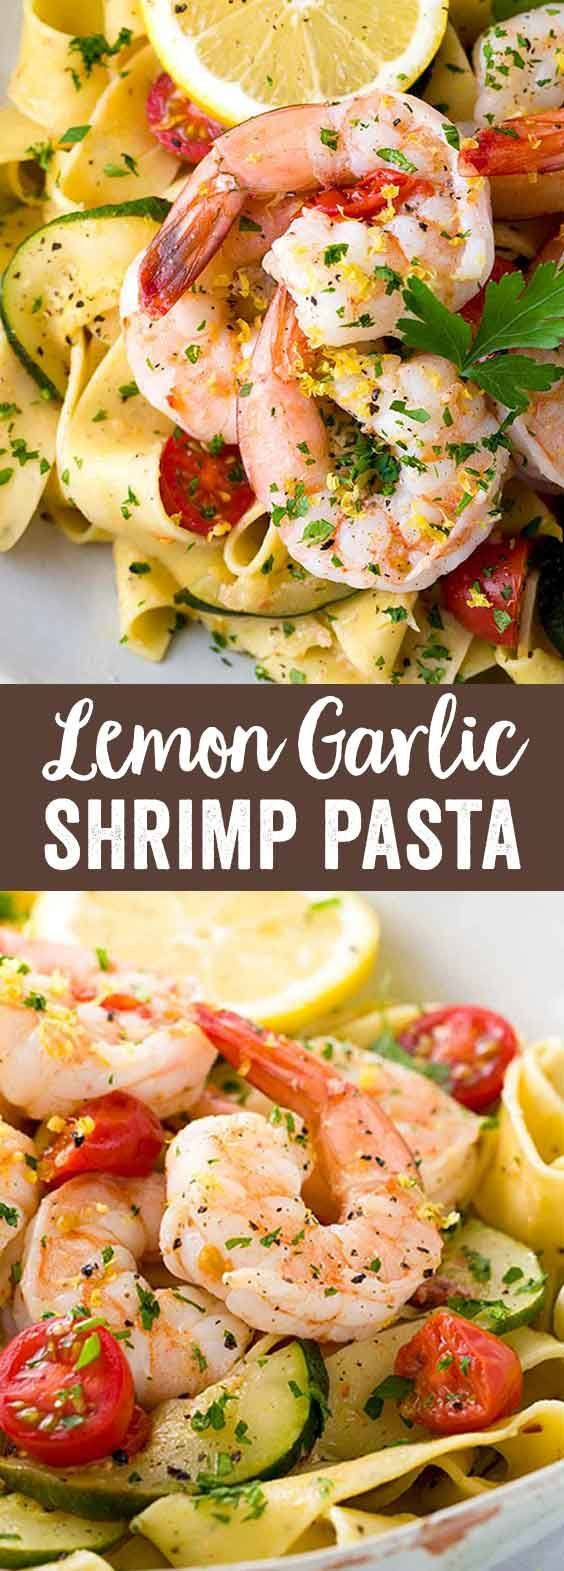 Shrimp pasta recipe with lemon garlic sauce served with zucchini and tomatoes. A simple, healthy meal prepared in only 30 minutes. via @foodiegavin